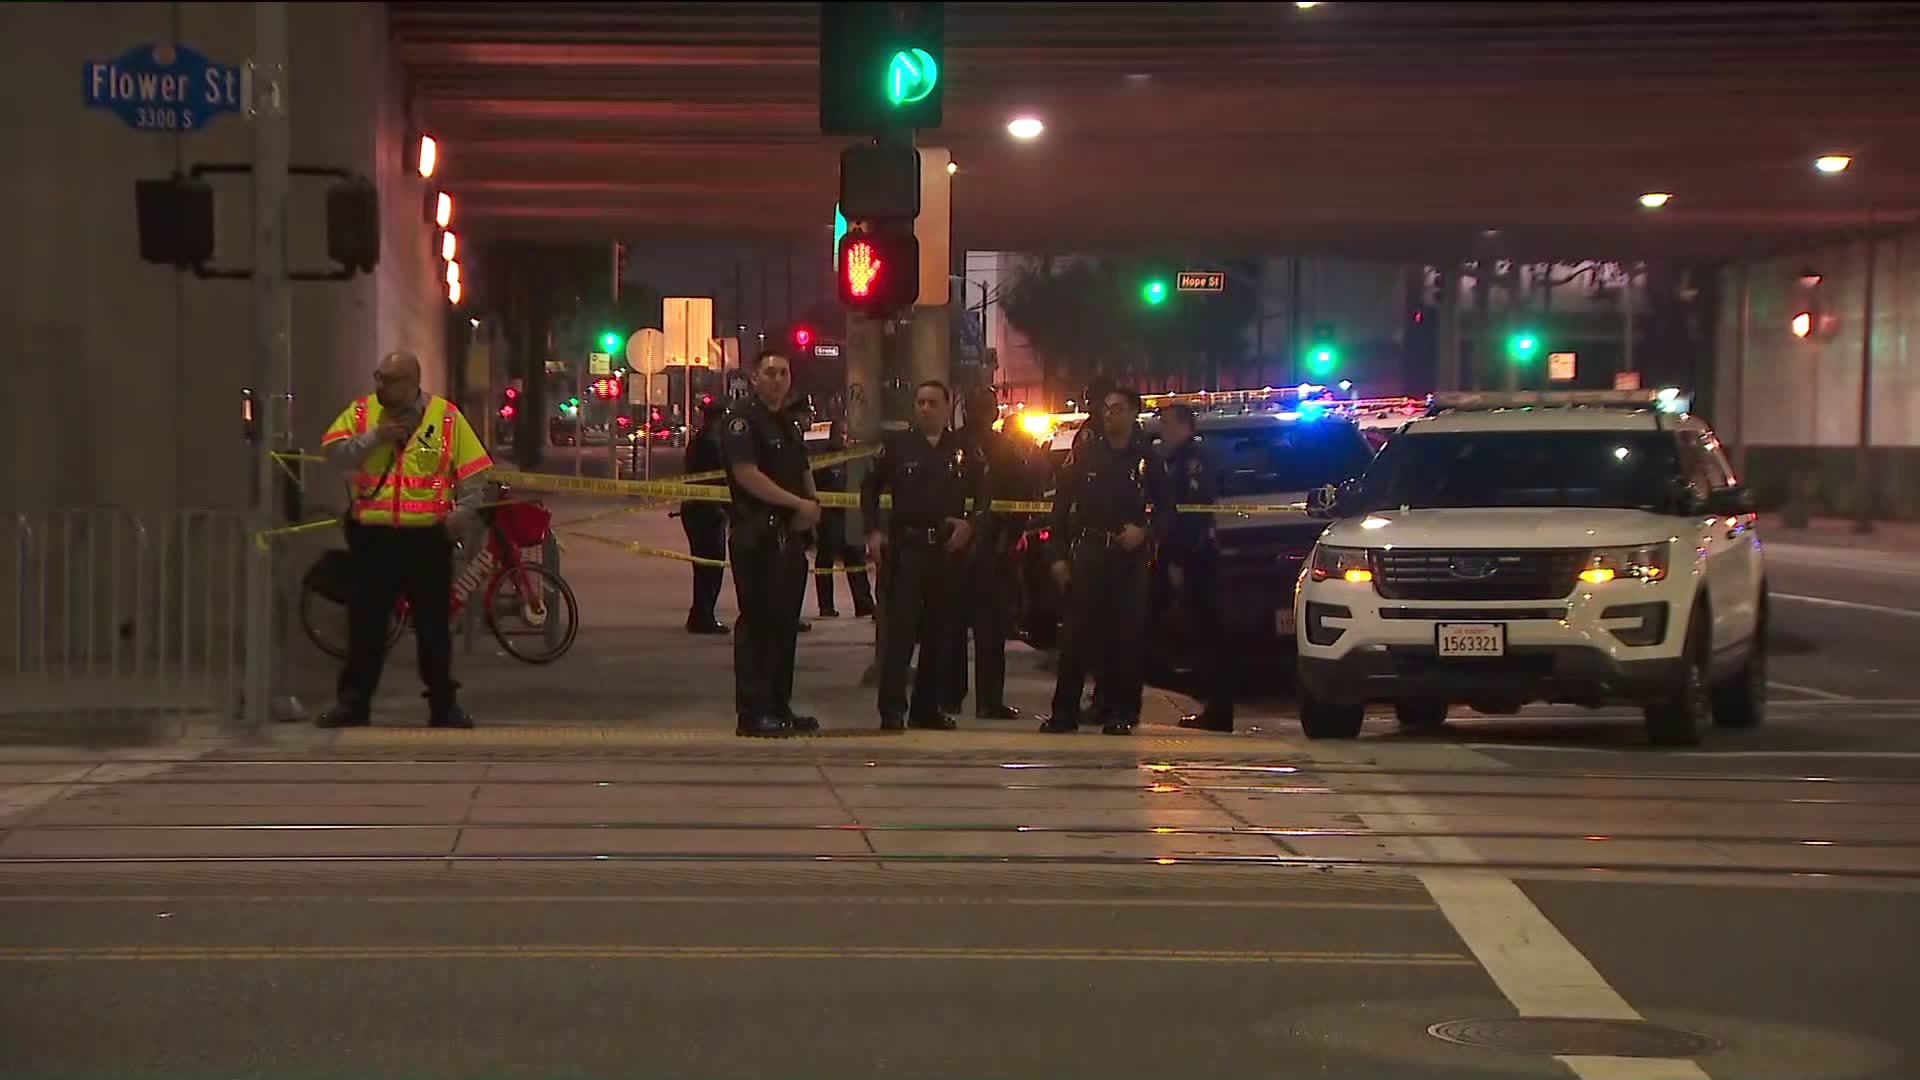 Los Angeles police investigate a stabbing that took place on a Metro train near USC on May 3, 2019. (Credit: KTLA)